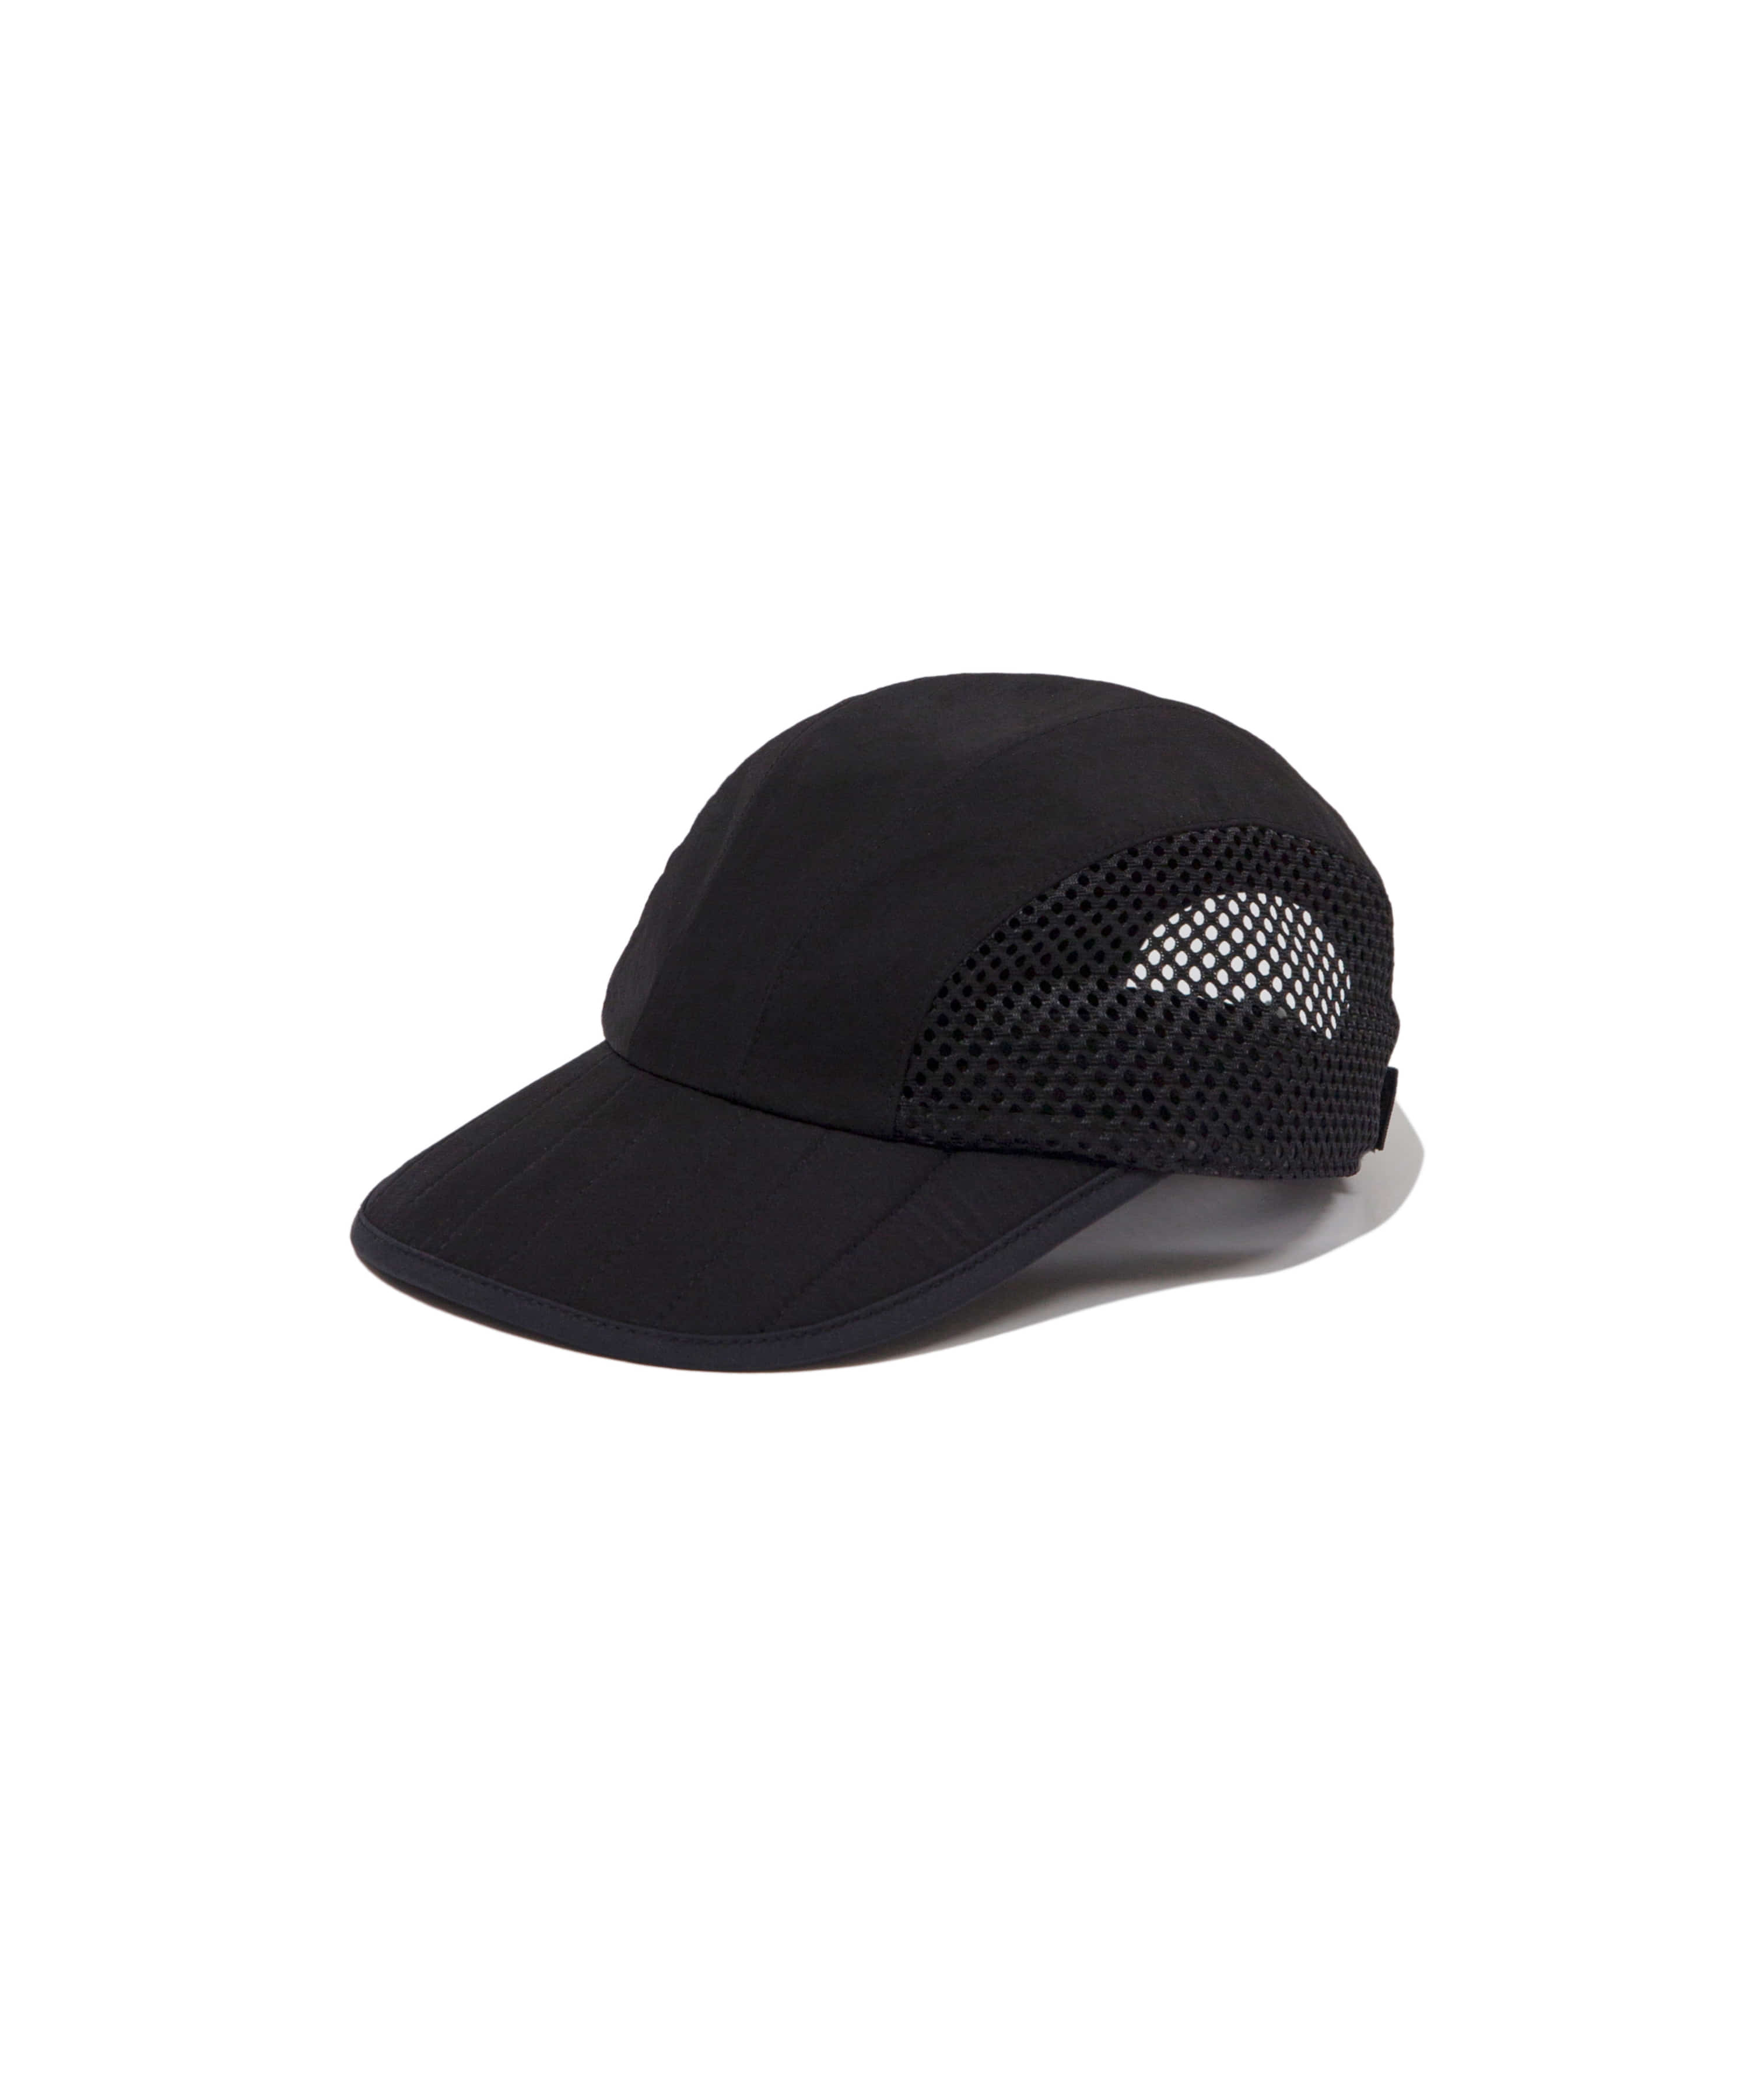 [추석특가50%] RIPSTOP CAMP CAP BLACK